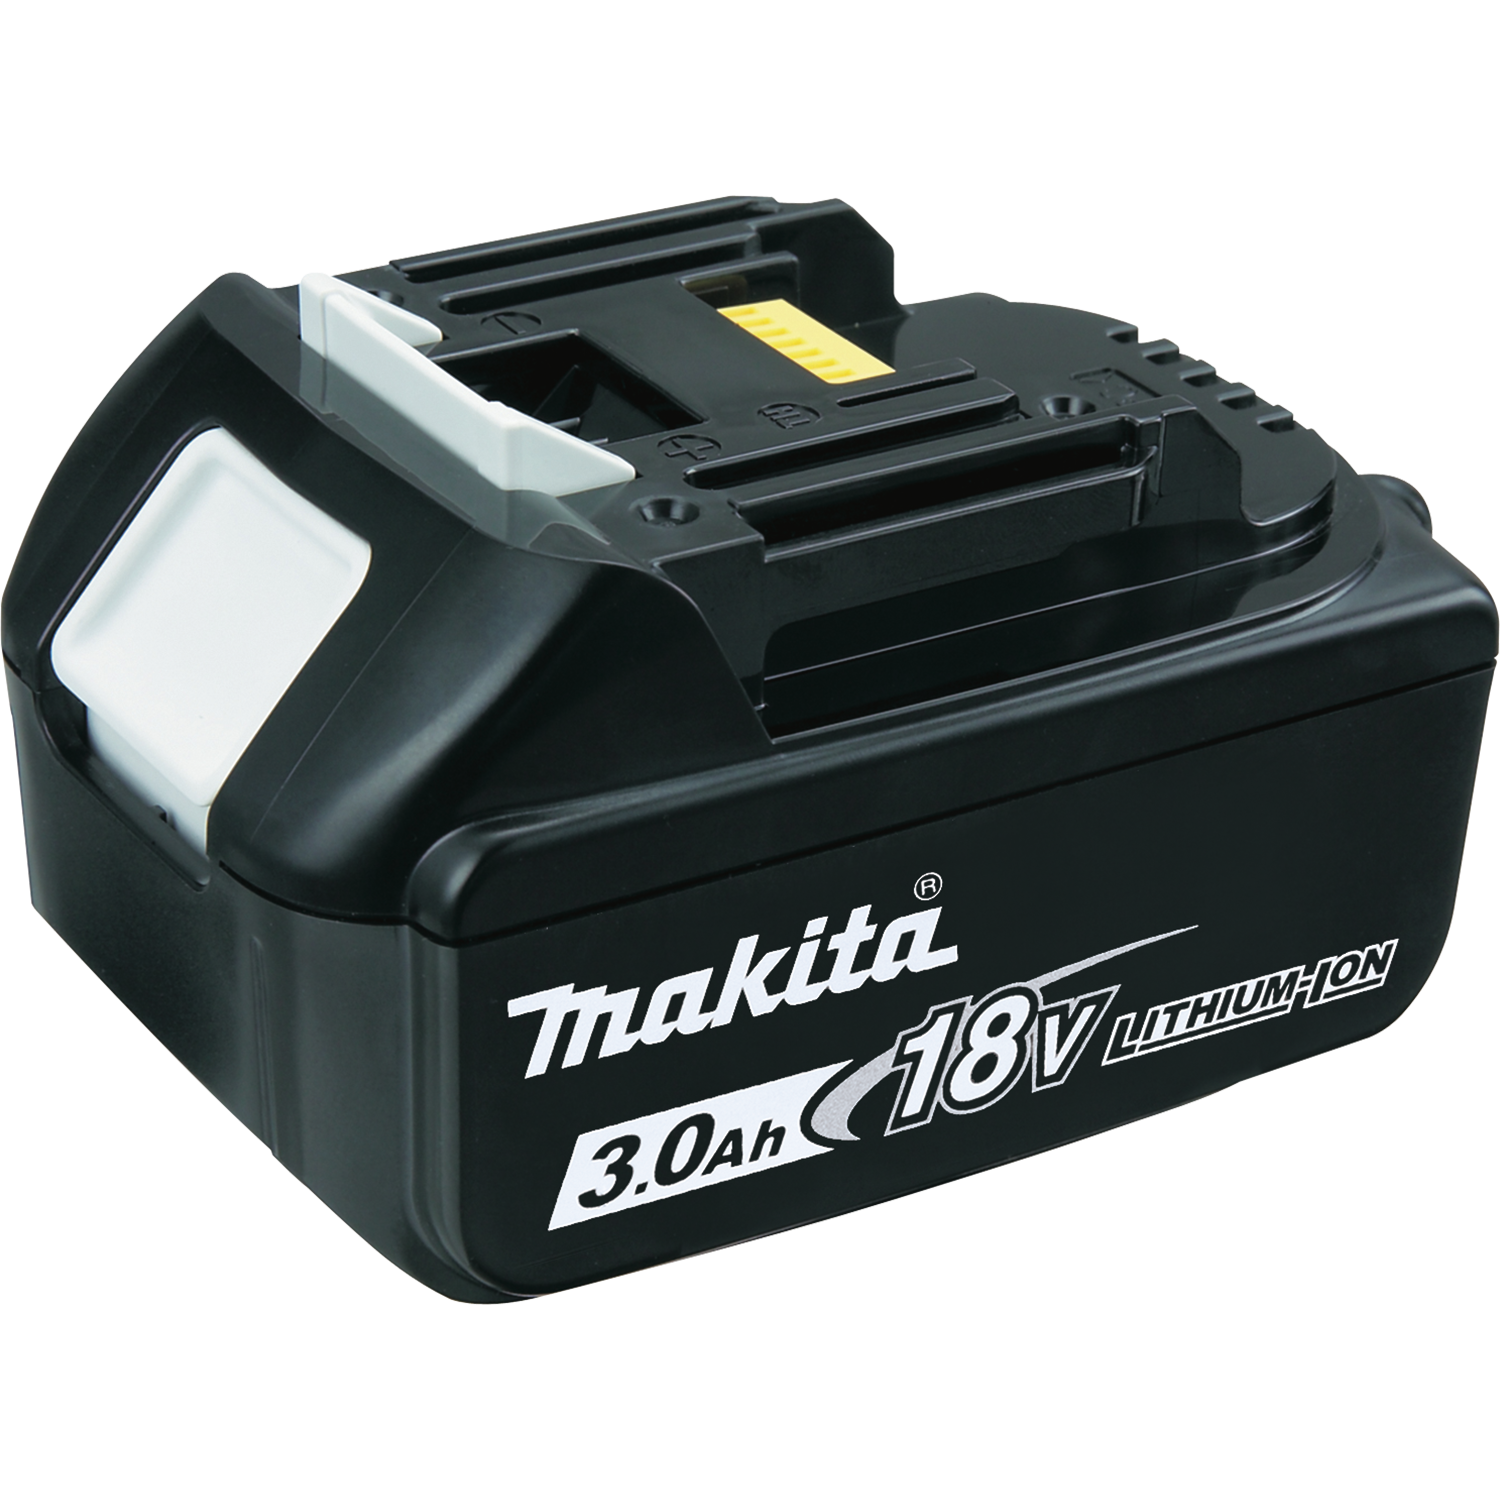 0e3b1c49 b351 4b9a 9cad d8025d8c7705_bl1830_p_1500px makita usa product details bl1830  at readyjetset.co